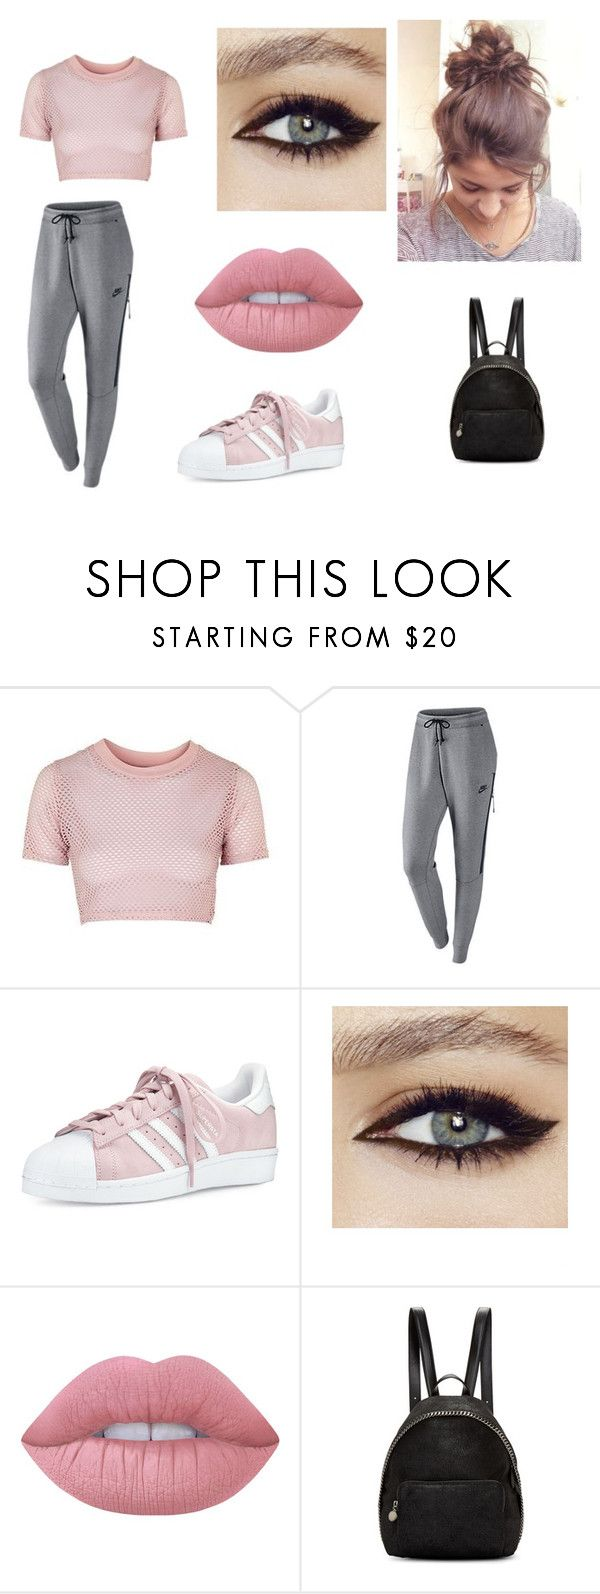 """Sans titre #482"" by radio-girl-21 ❤ liked on Polyvore featuring Topshop, NIKE, adidas, Lime Crime and STELLA McCARTNEY"